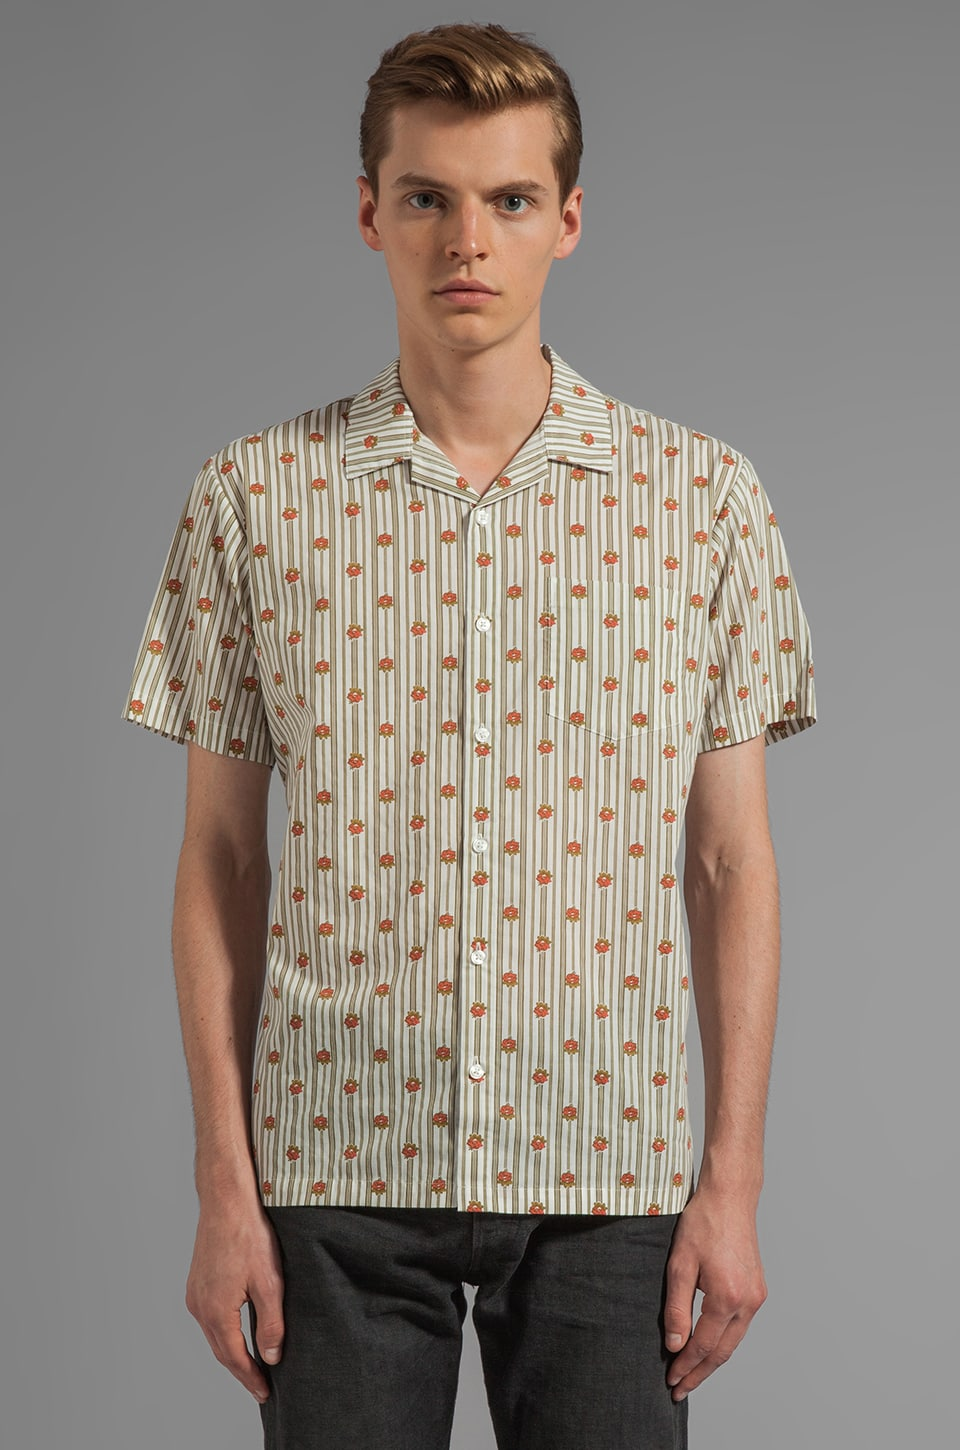 RVCA X Alex Knost Signature Collection Wallpaper S/S Button Down in Avocado